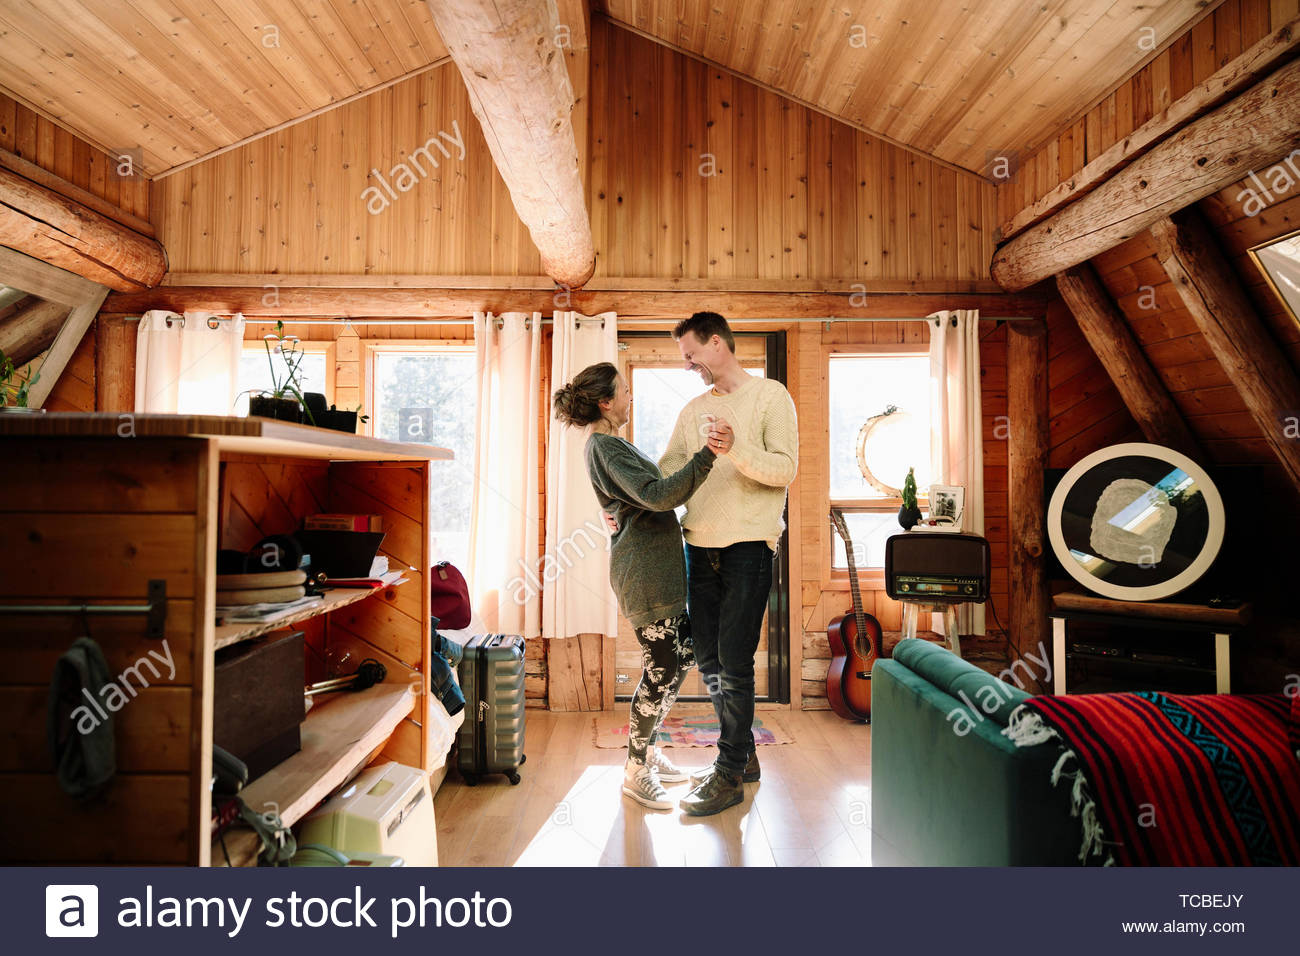 Affectionate couple dancing in cabin Stock Photo